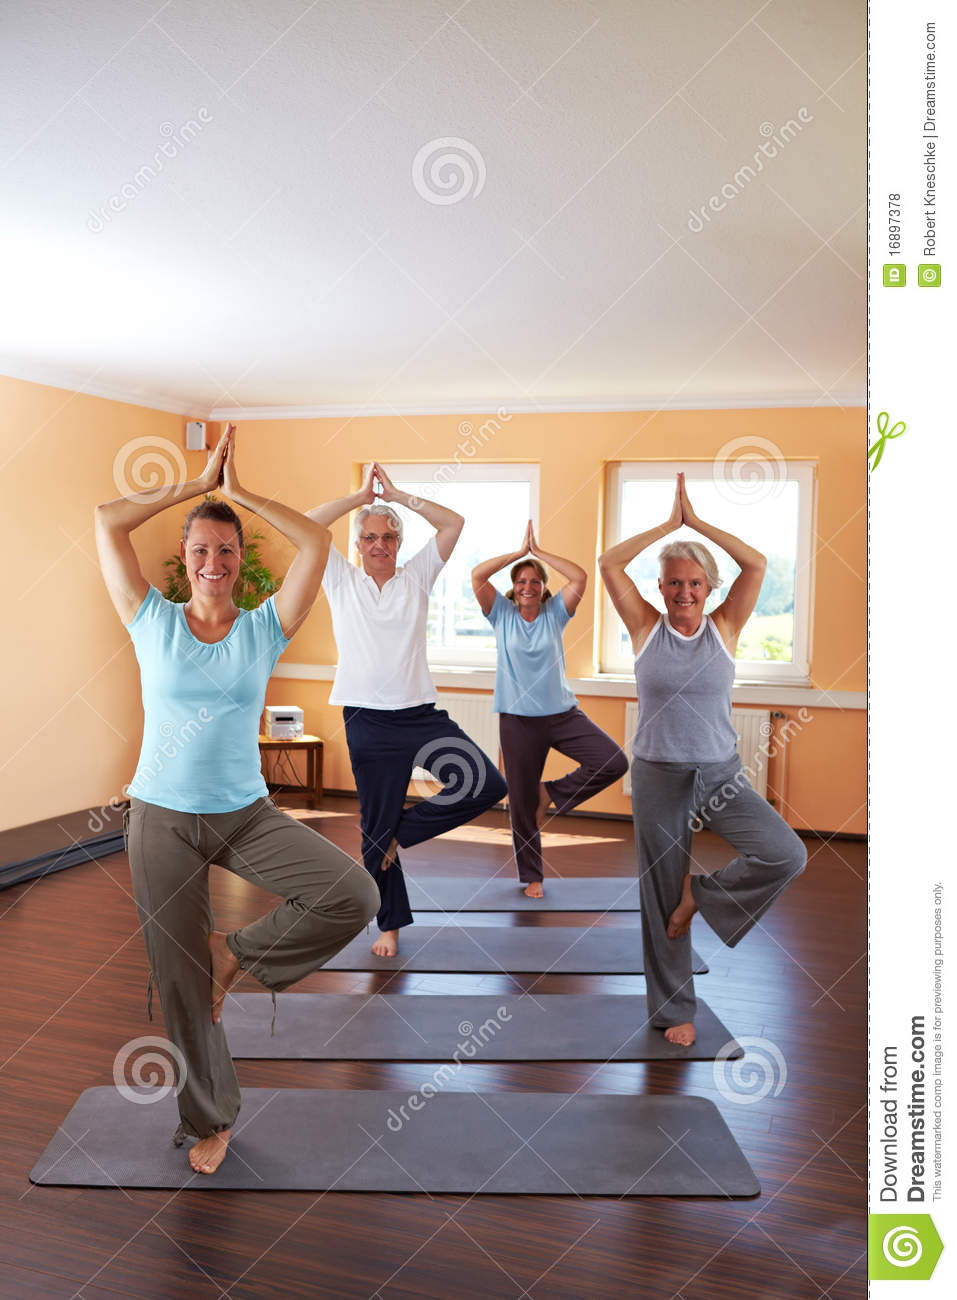 Yoga group doing Vrikshasana